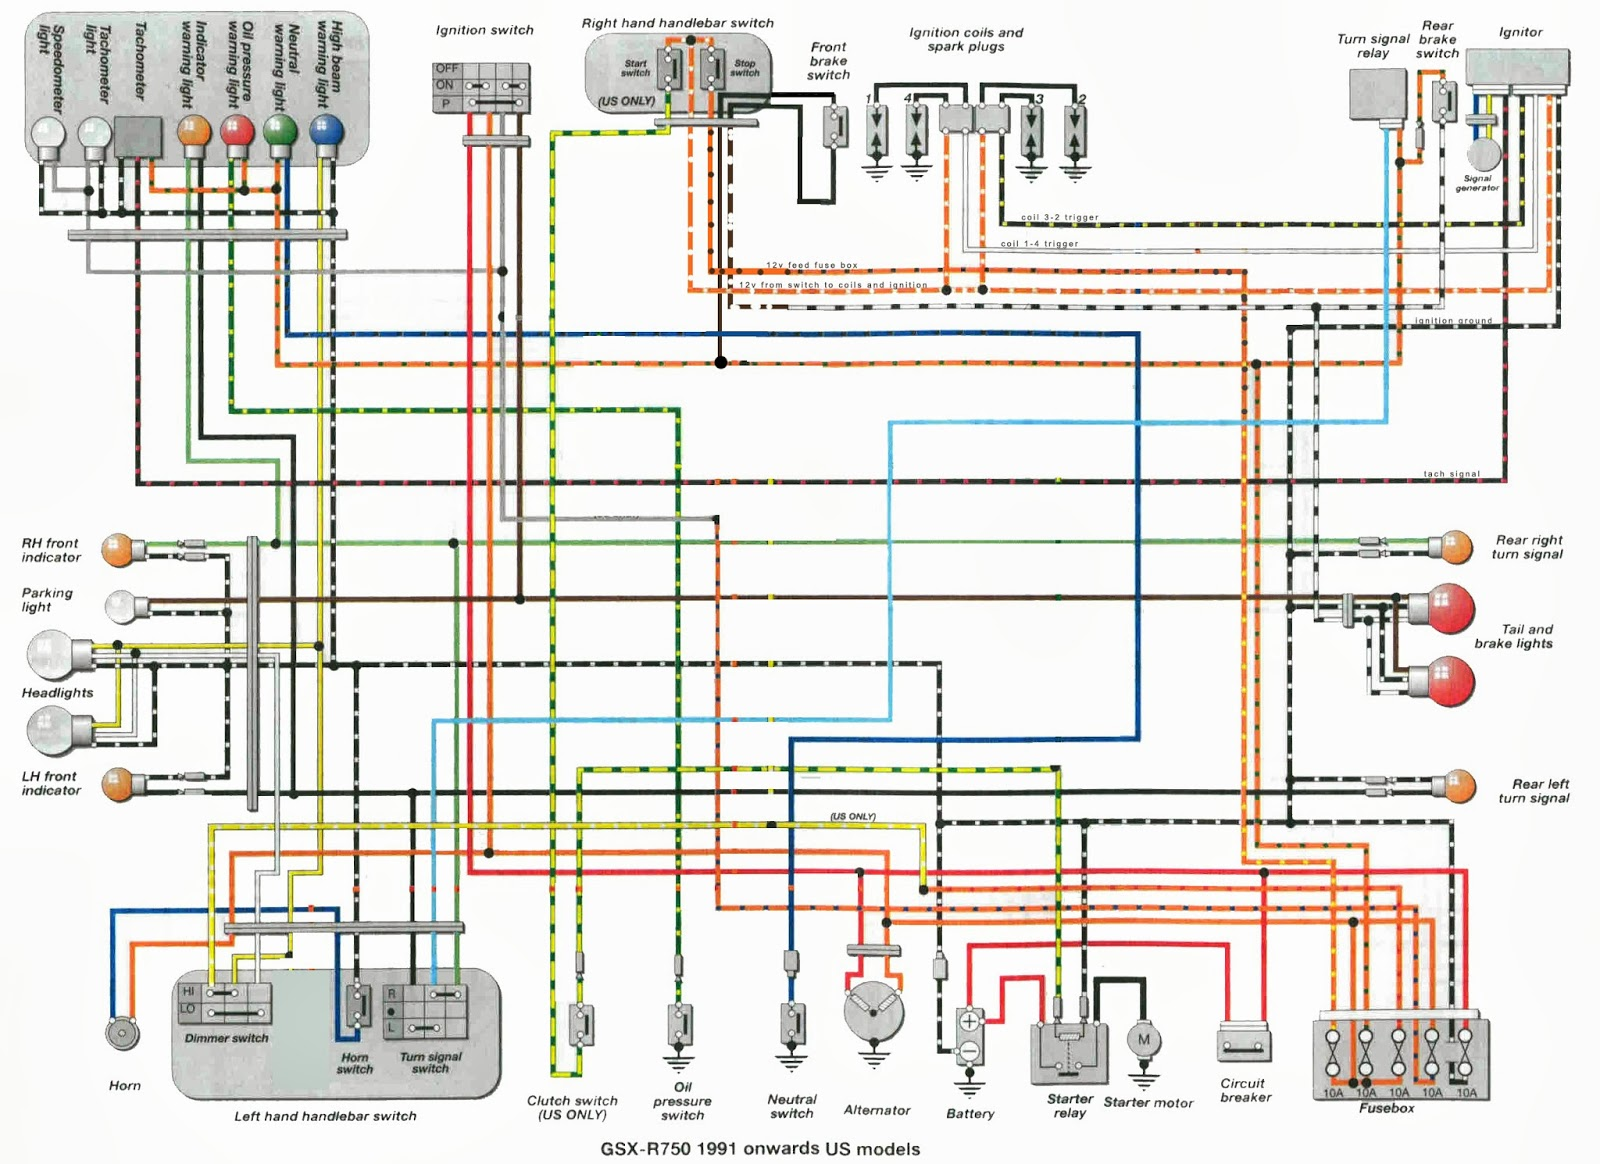 wiring diagram suzuki gsxr 600 1993 the wiring diagram readingrat net 1969 mustang electrical wiring diagram [ 1600 x 1164 Pixel ]